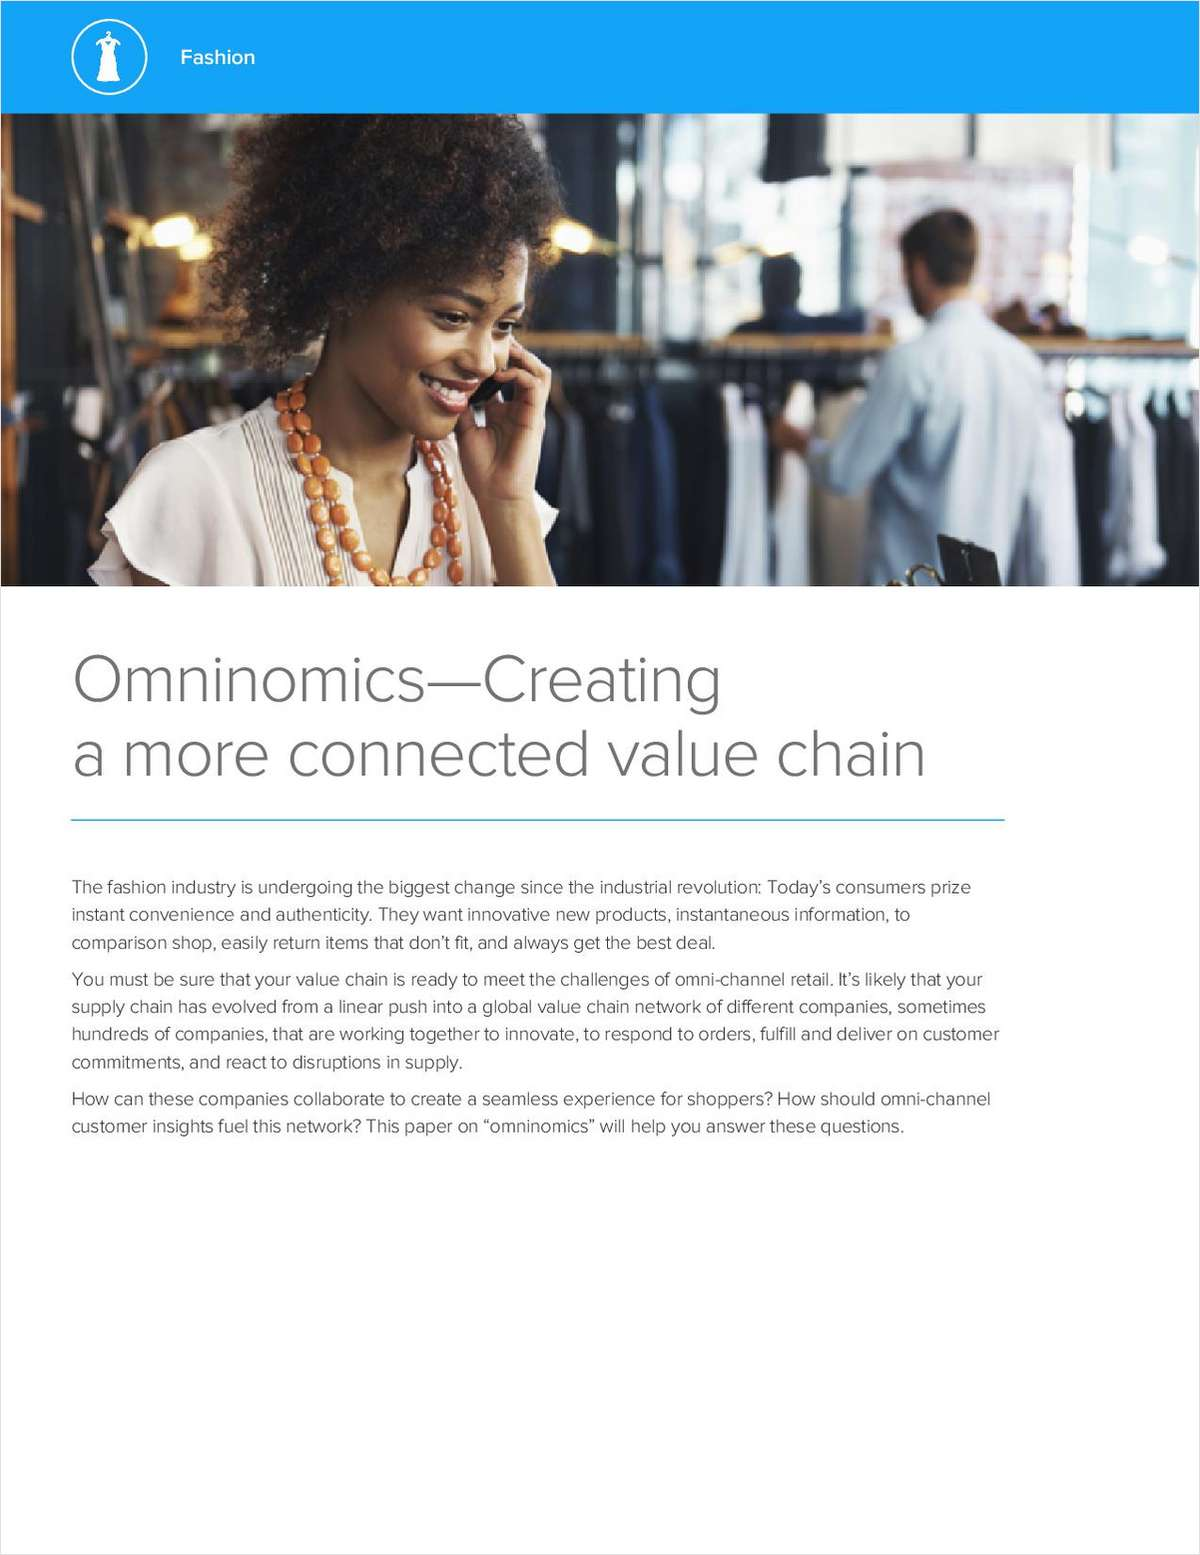 Omninomics, Creating a More Connected Value Chain